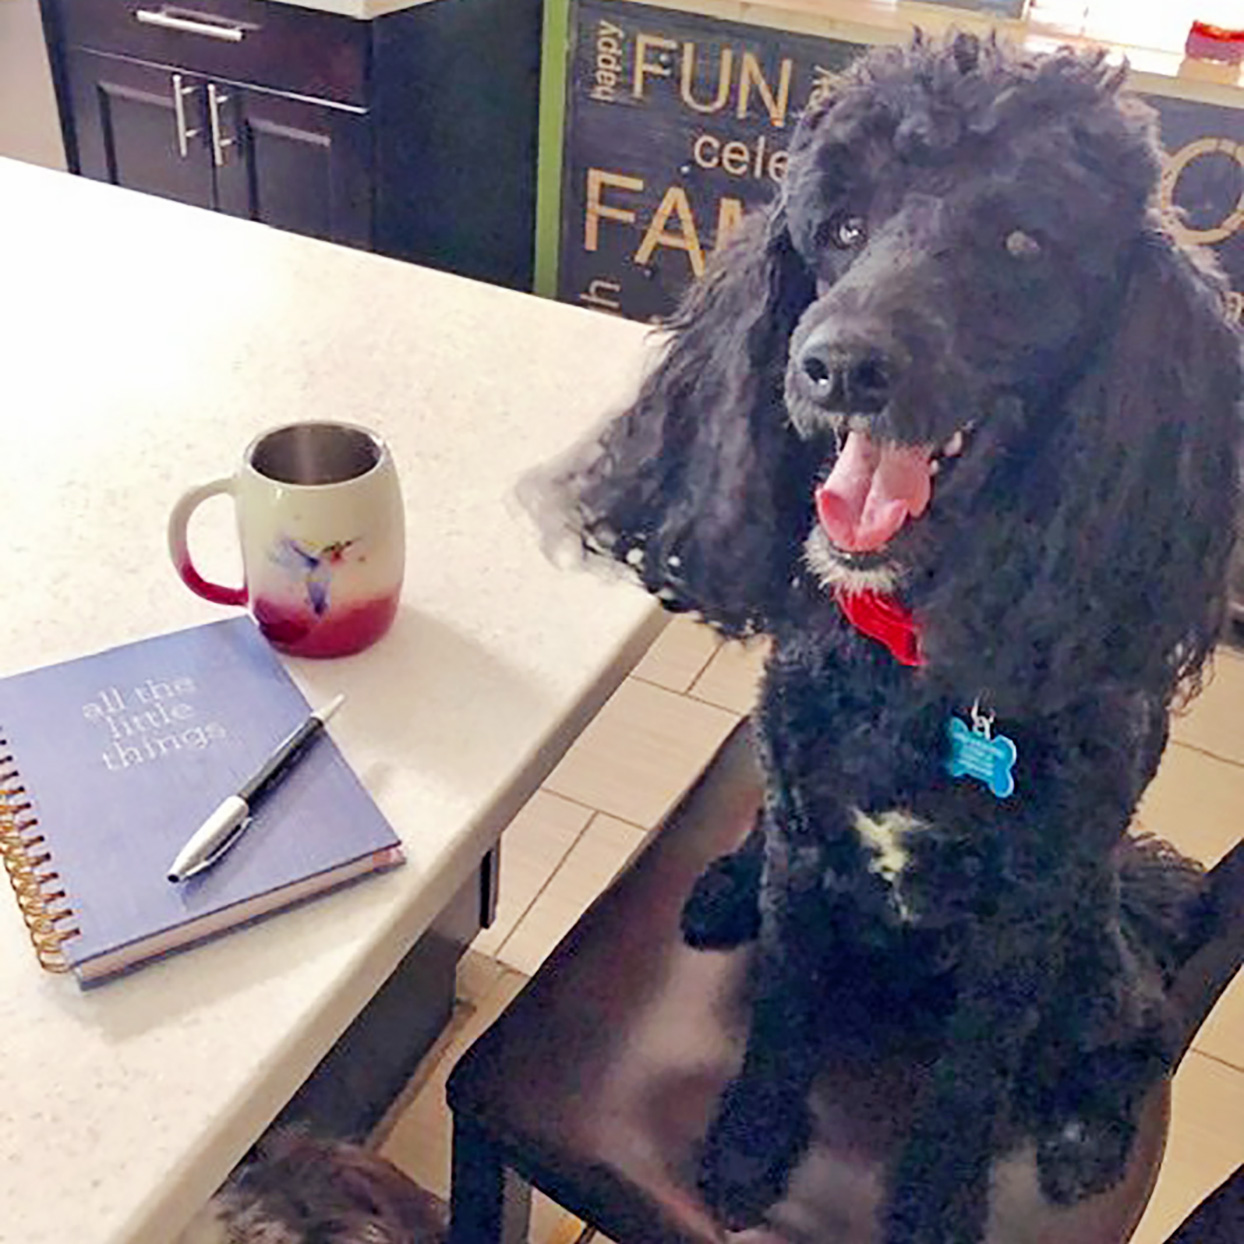 Black poodle sits on barstool next to coffee cup and notebook